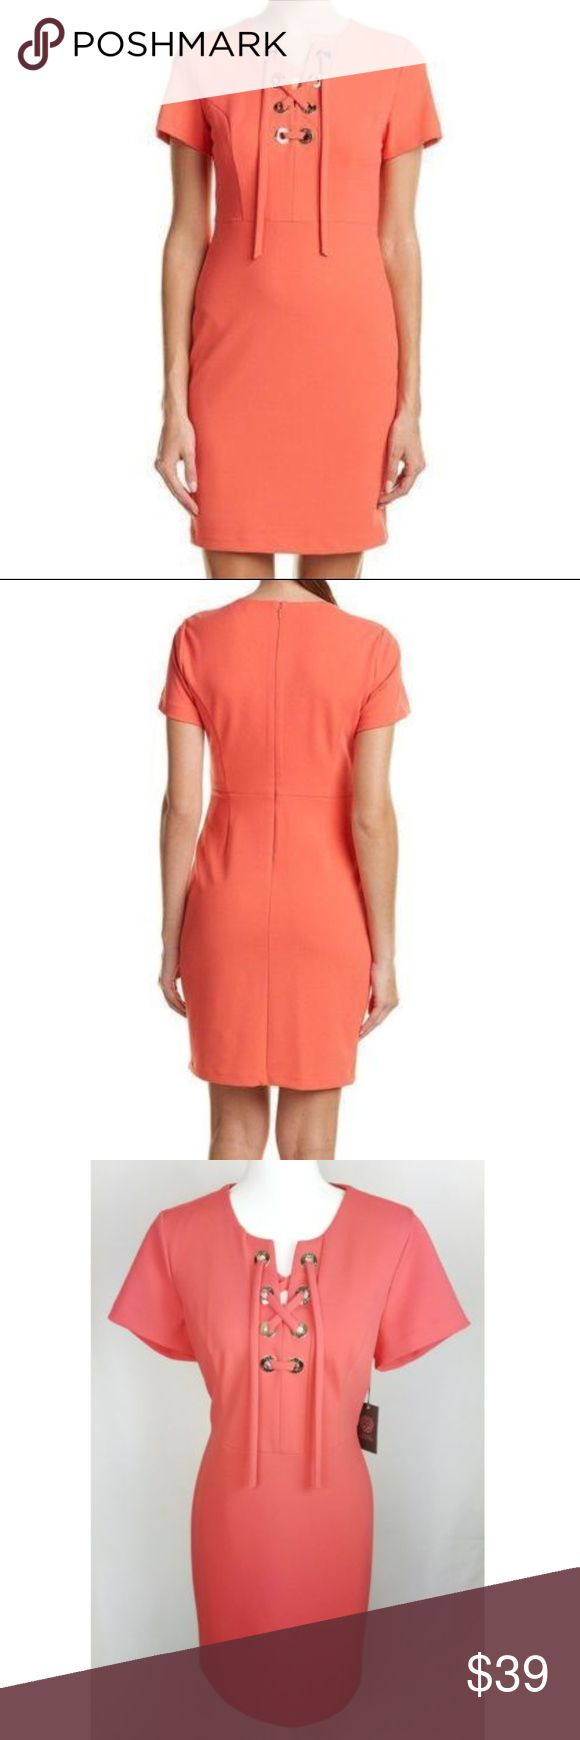 Vince Camuto Sheath Dress Coral Orange 10 Condition: New with tags:  Design Features:Grommets, Lace-up front Occasion: Party/Cocktail Color: Coral Orange Dress Length: Short Style: Sheath Dress Style Number: 9166918 Size (Women's): 10 Color Name:835 Coral Passion Style Name:Pacific Breeze Garment Care: Dry Clean Sleeve Length: Short Sleeve Measurements taken with item lying flat (inches) Chest: 19 Waist: 16 Sleeve: 7  Length: 36 Material: 94% polyester 6% elastane, lining 100%…